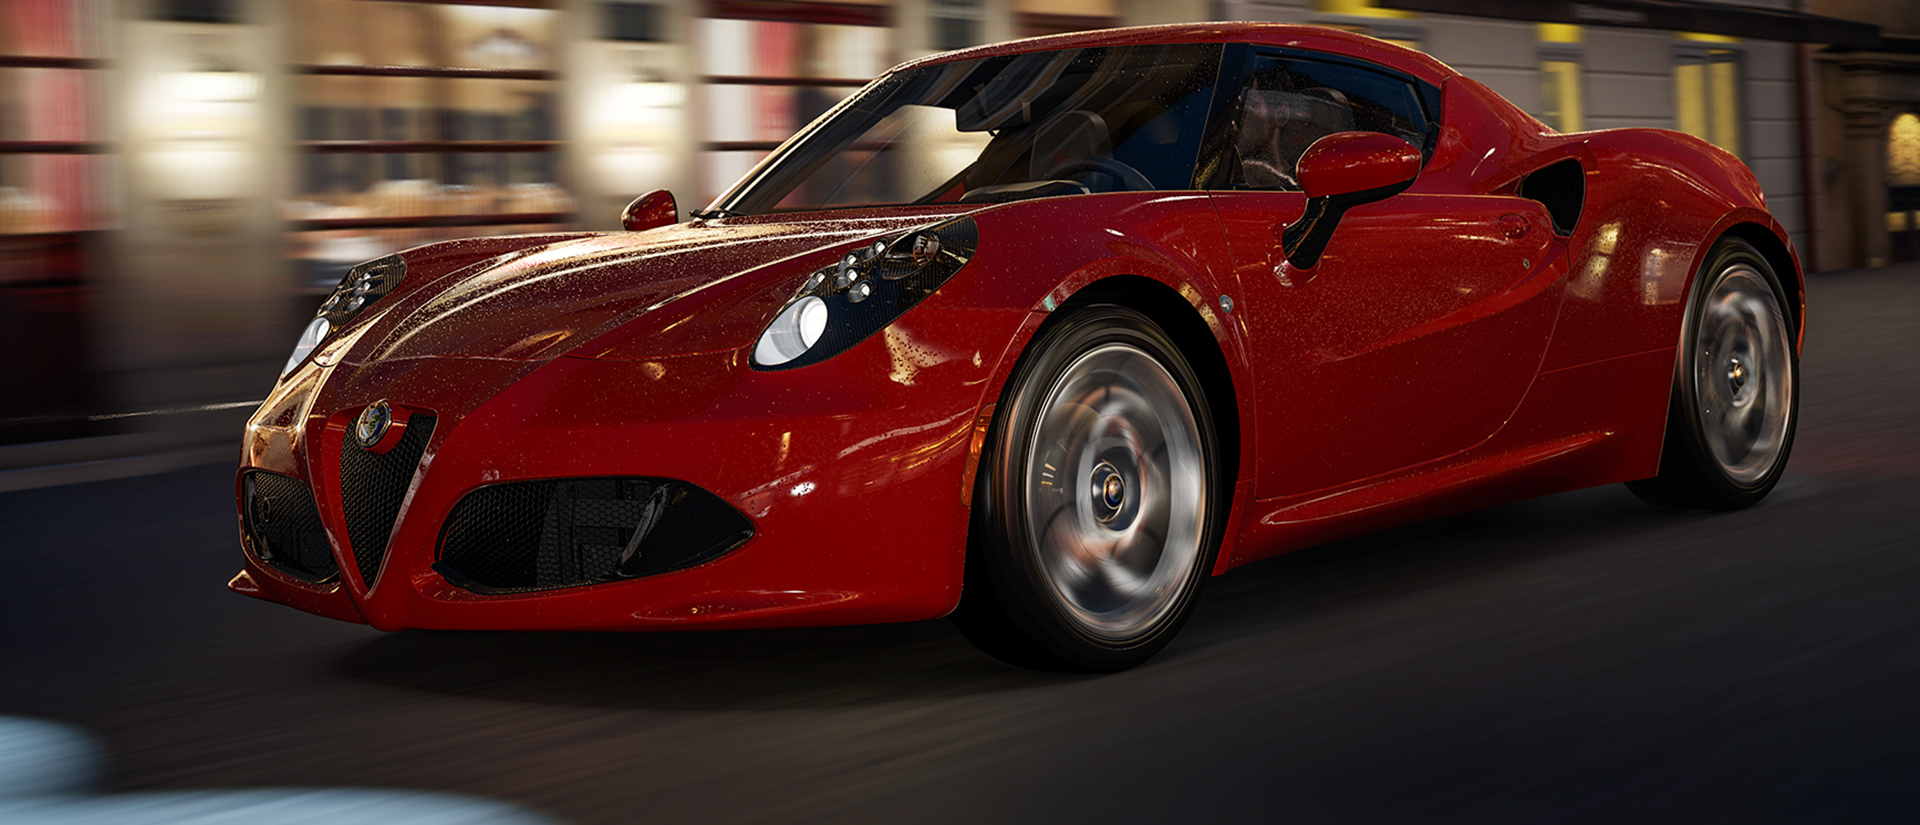 forza horizon 2 and for honor headline august 39 s games with. Black Bedroom Furniture Sets. Home Design Ideas